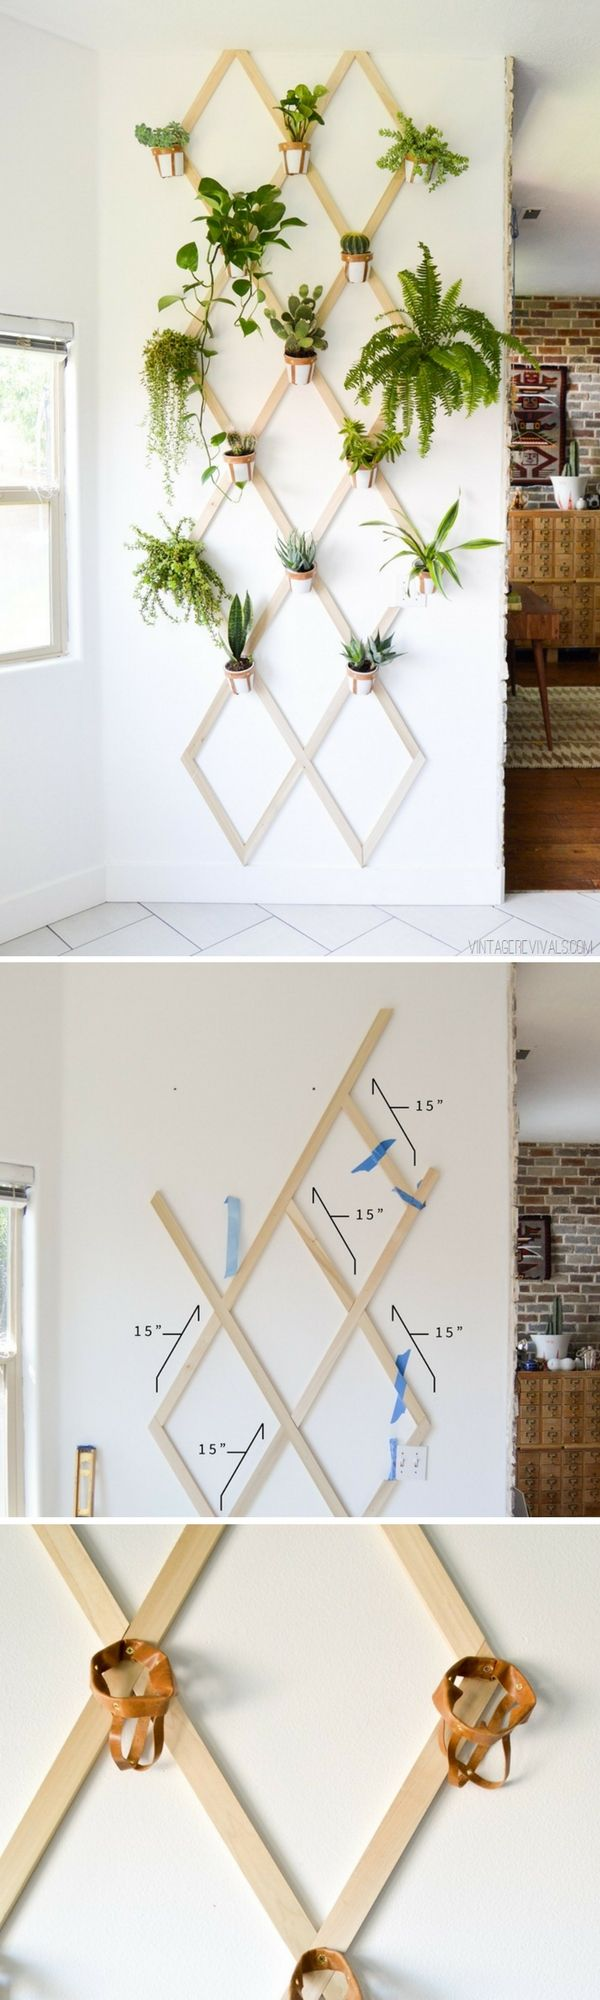 Check out how to build a DIY trellis plant wall @istandarddesign